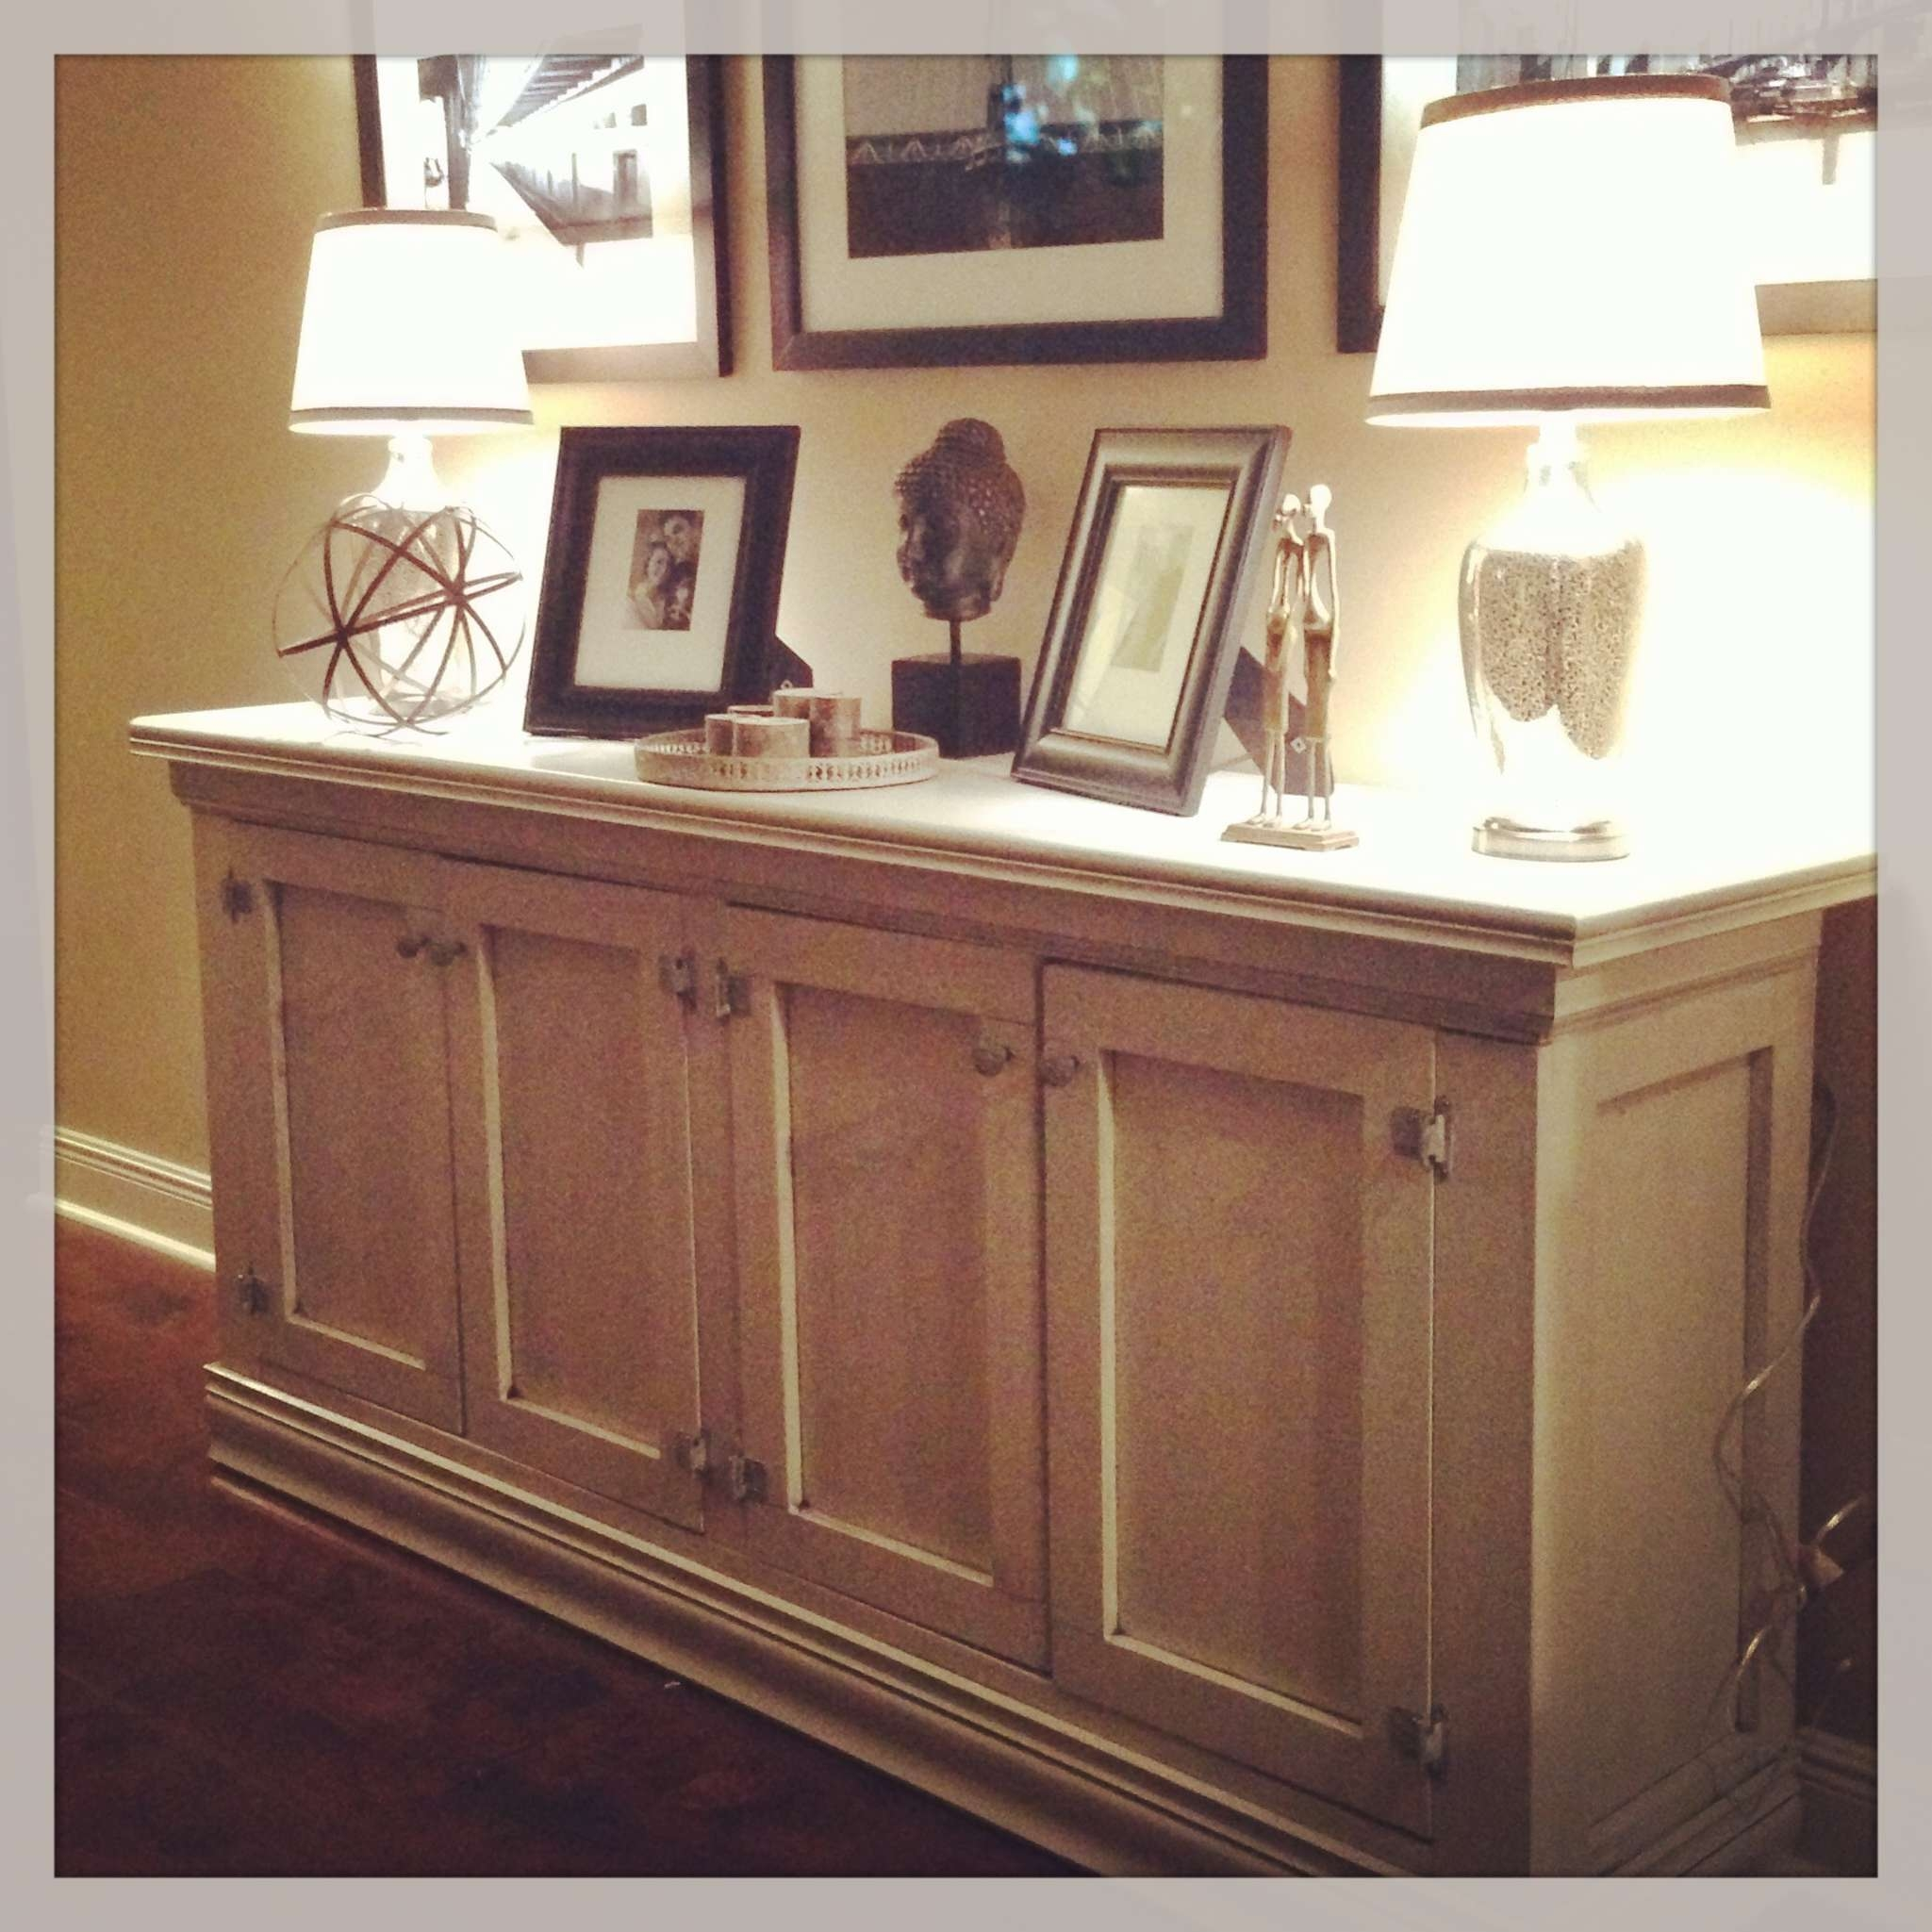 Buffet Or Sideboard Best Of And Diy Sideboard The Sweet Life Within Glass Door Buffet Sideboards (View 9 of 20)